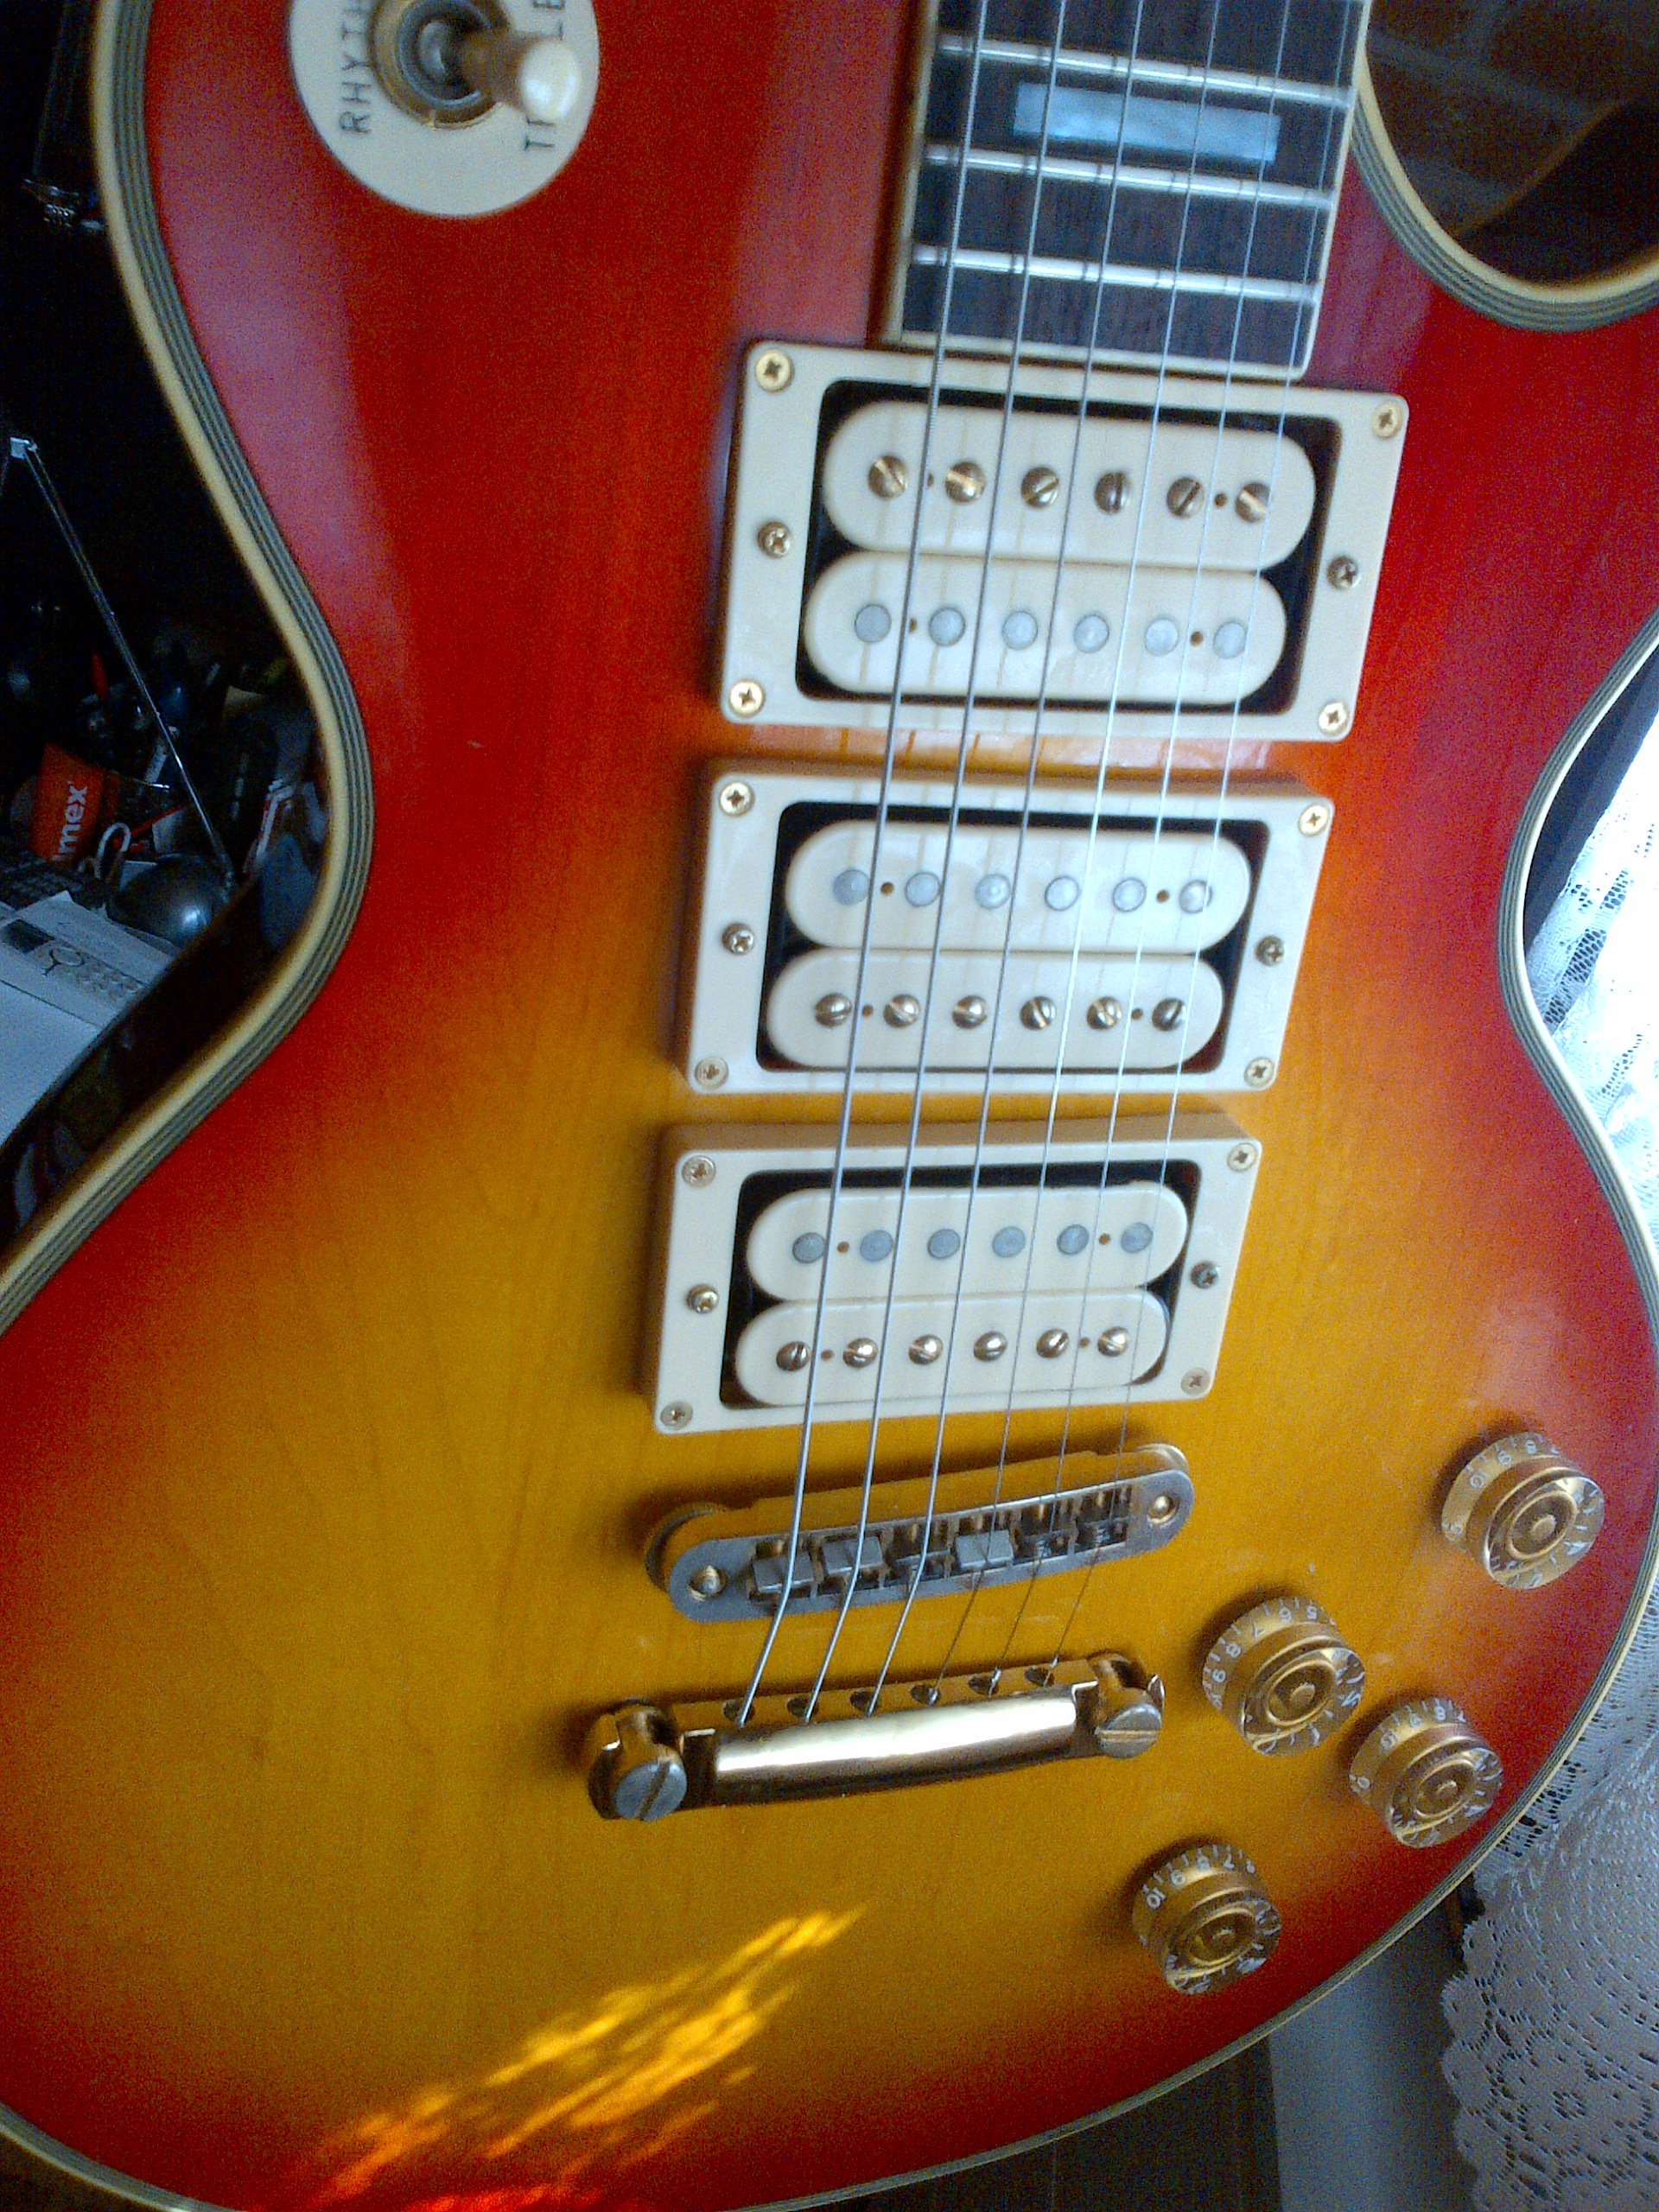 Nice Gibson Pickup Wiring Colors Tall 3 Pickup Guitar Regular How To Wire A Solar System Solar Cell Connection Diagram Old Solar Power Schematic Diagram SoftHow To Install An Electrical Panel Greco Les Paul Custom 3 Humbuckers Image (#871840)   Audiofanzine